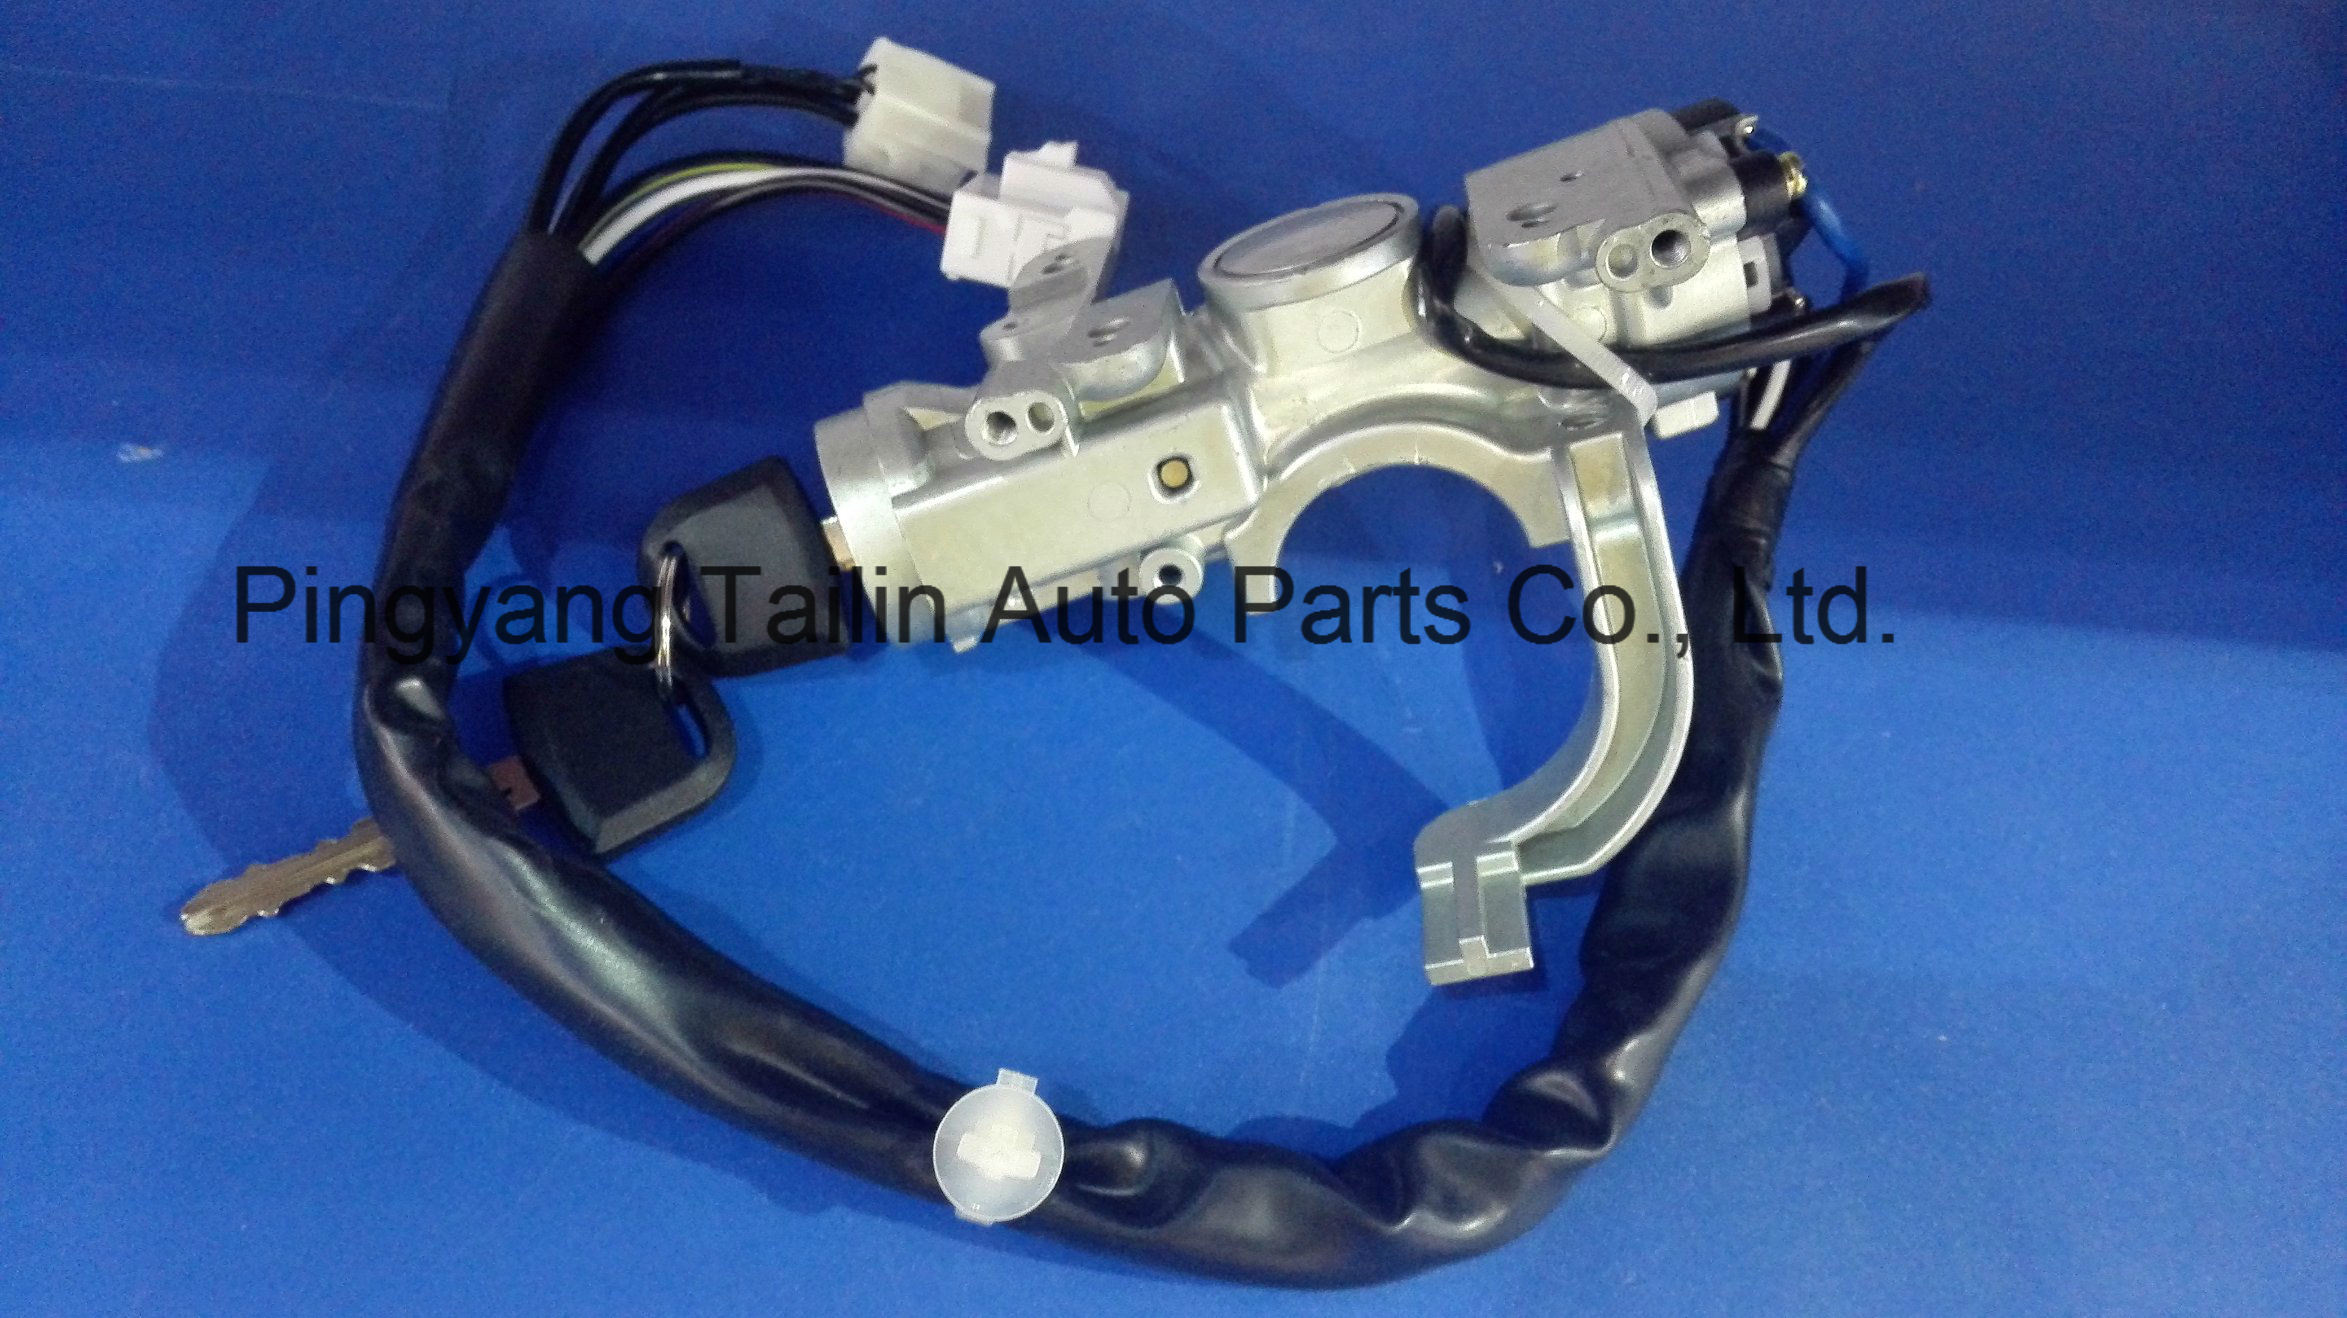 High Quality Ignition Switch Assembly for Isuzu D-Max 2003